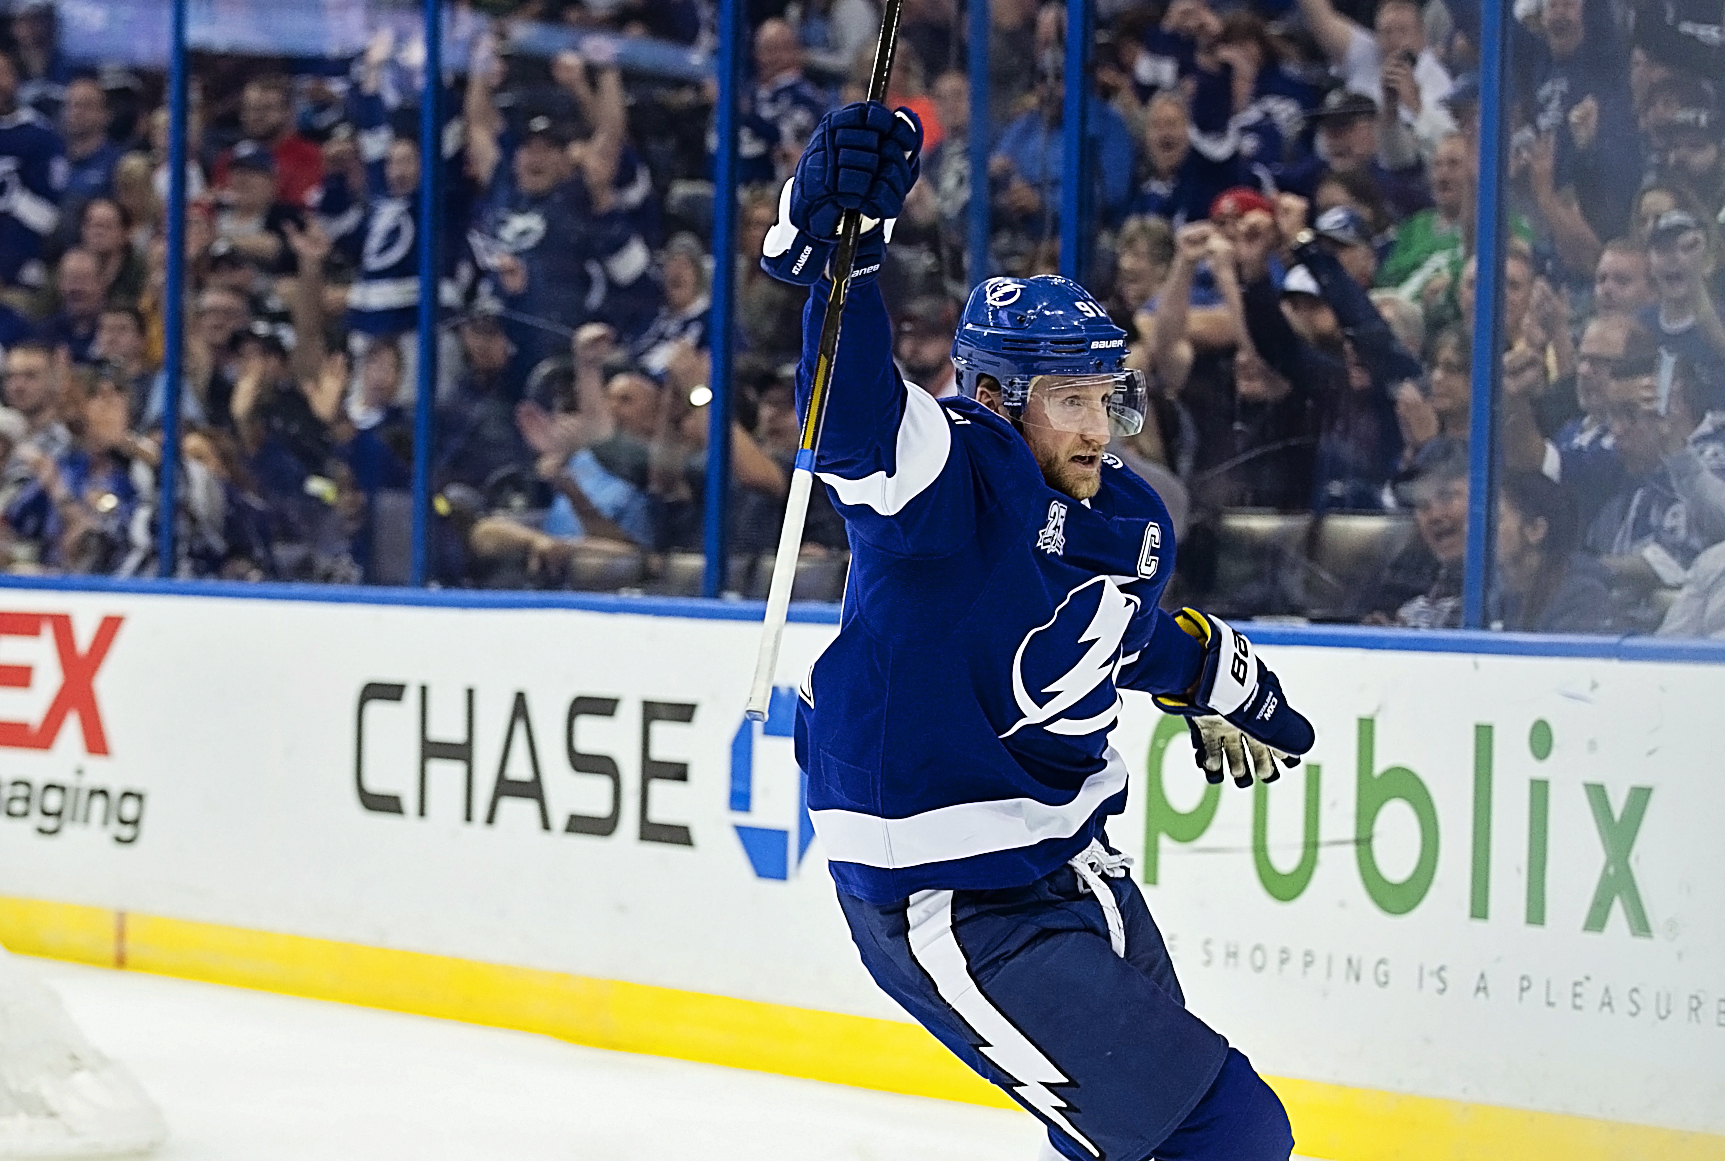 Steven Stamkos scores the first of his two goals./CARMEN MANDATO